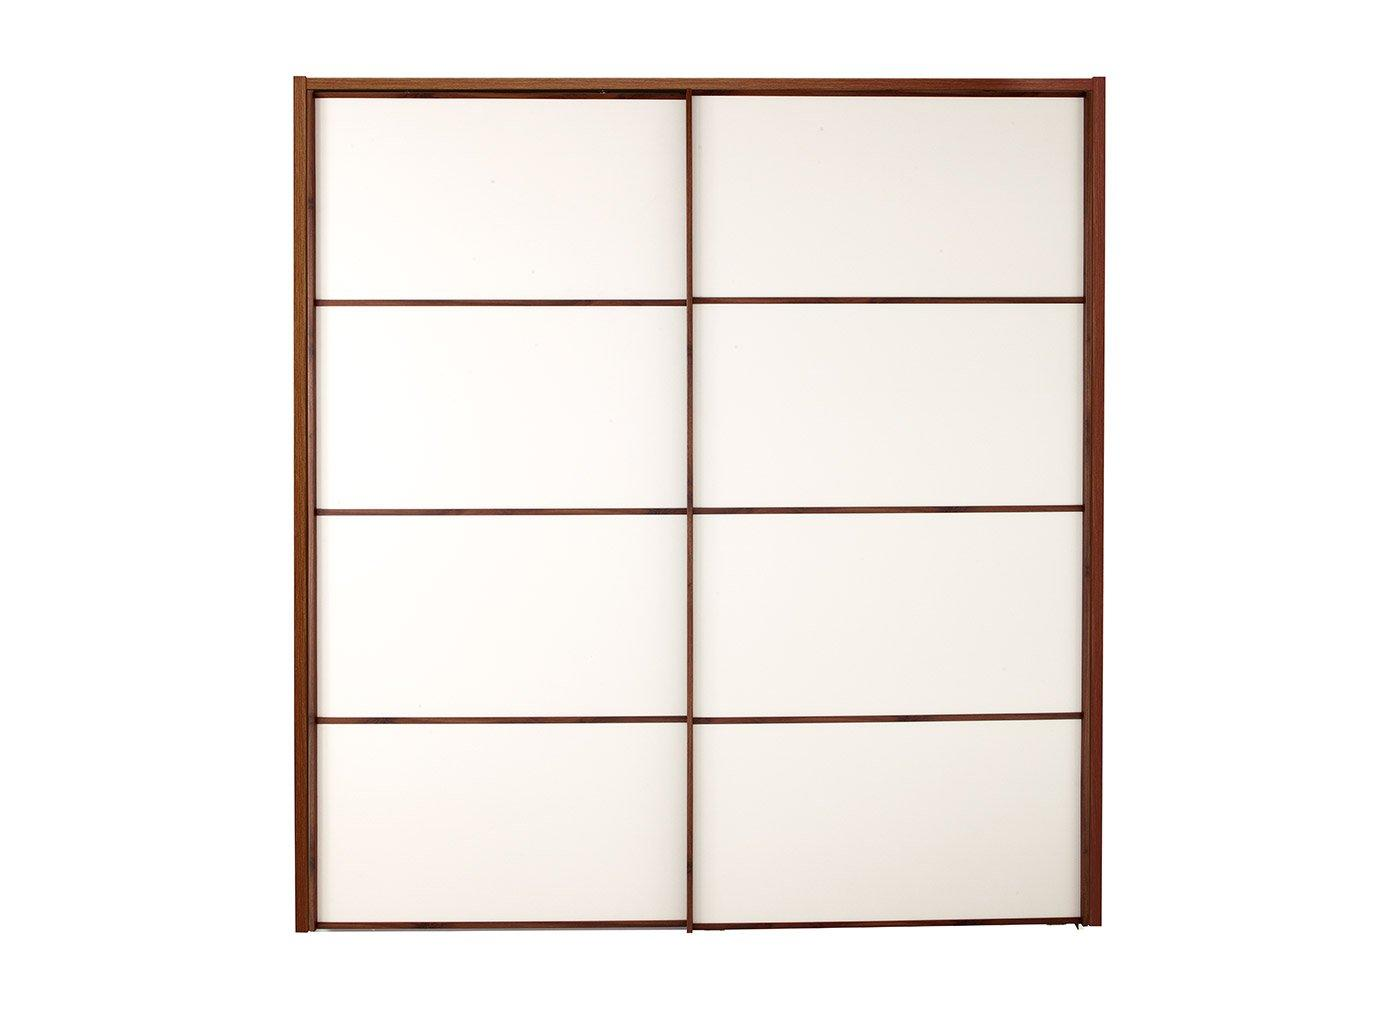 Cali 2 Door Sliding Wardrobe Champagne & Wood - Large CREAM